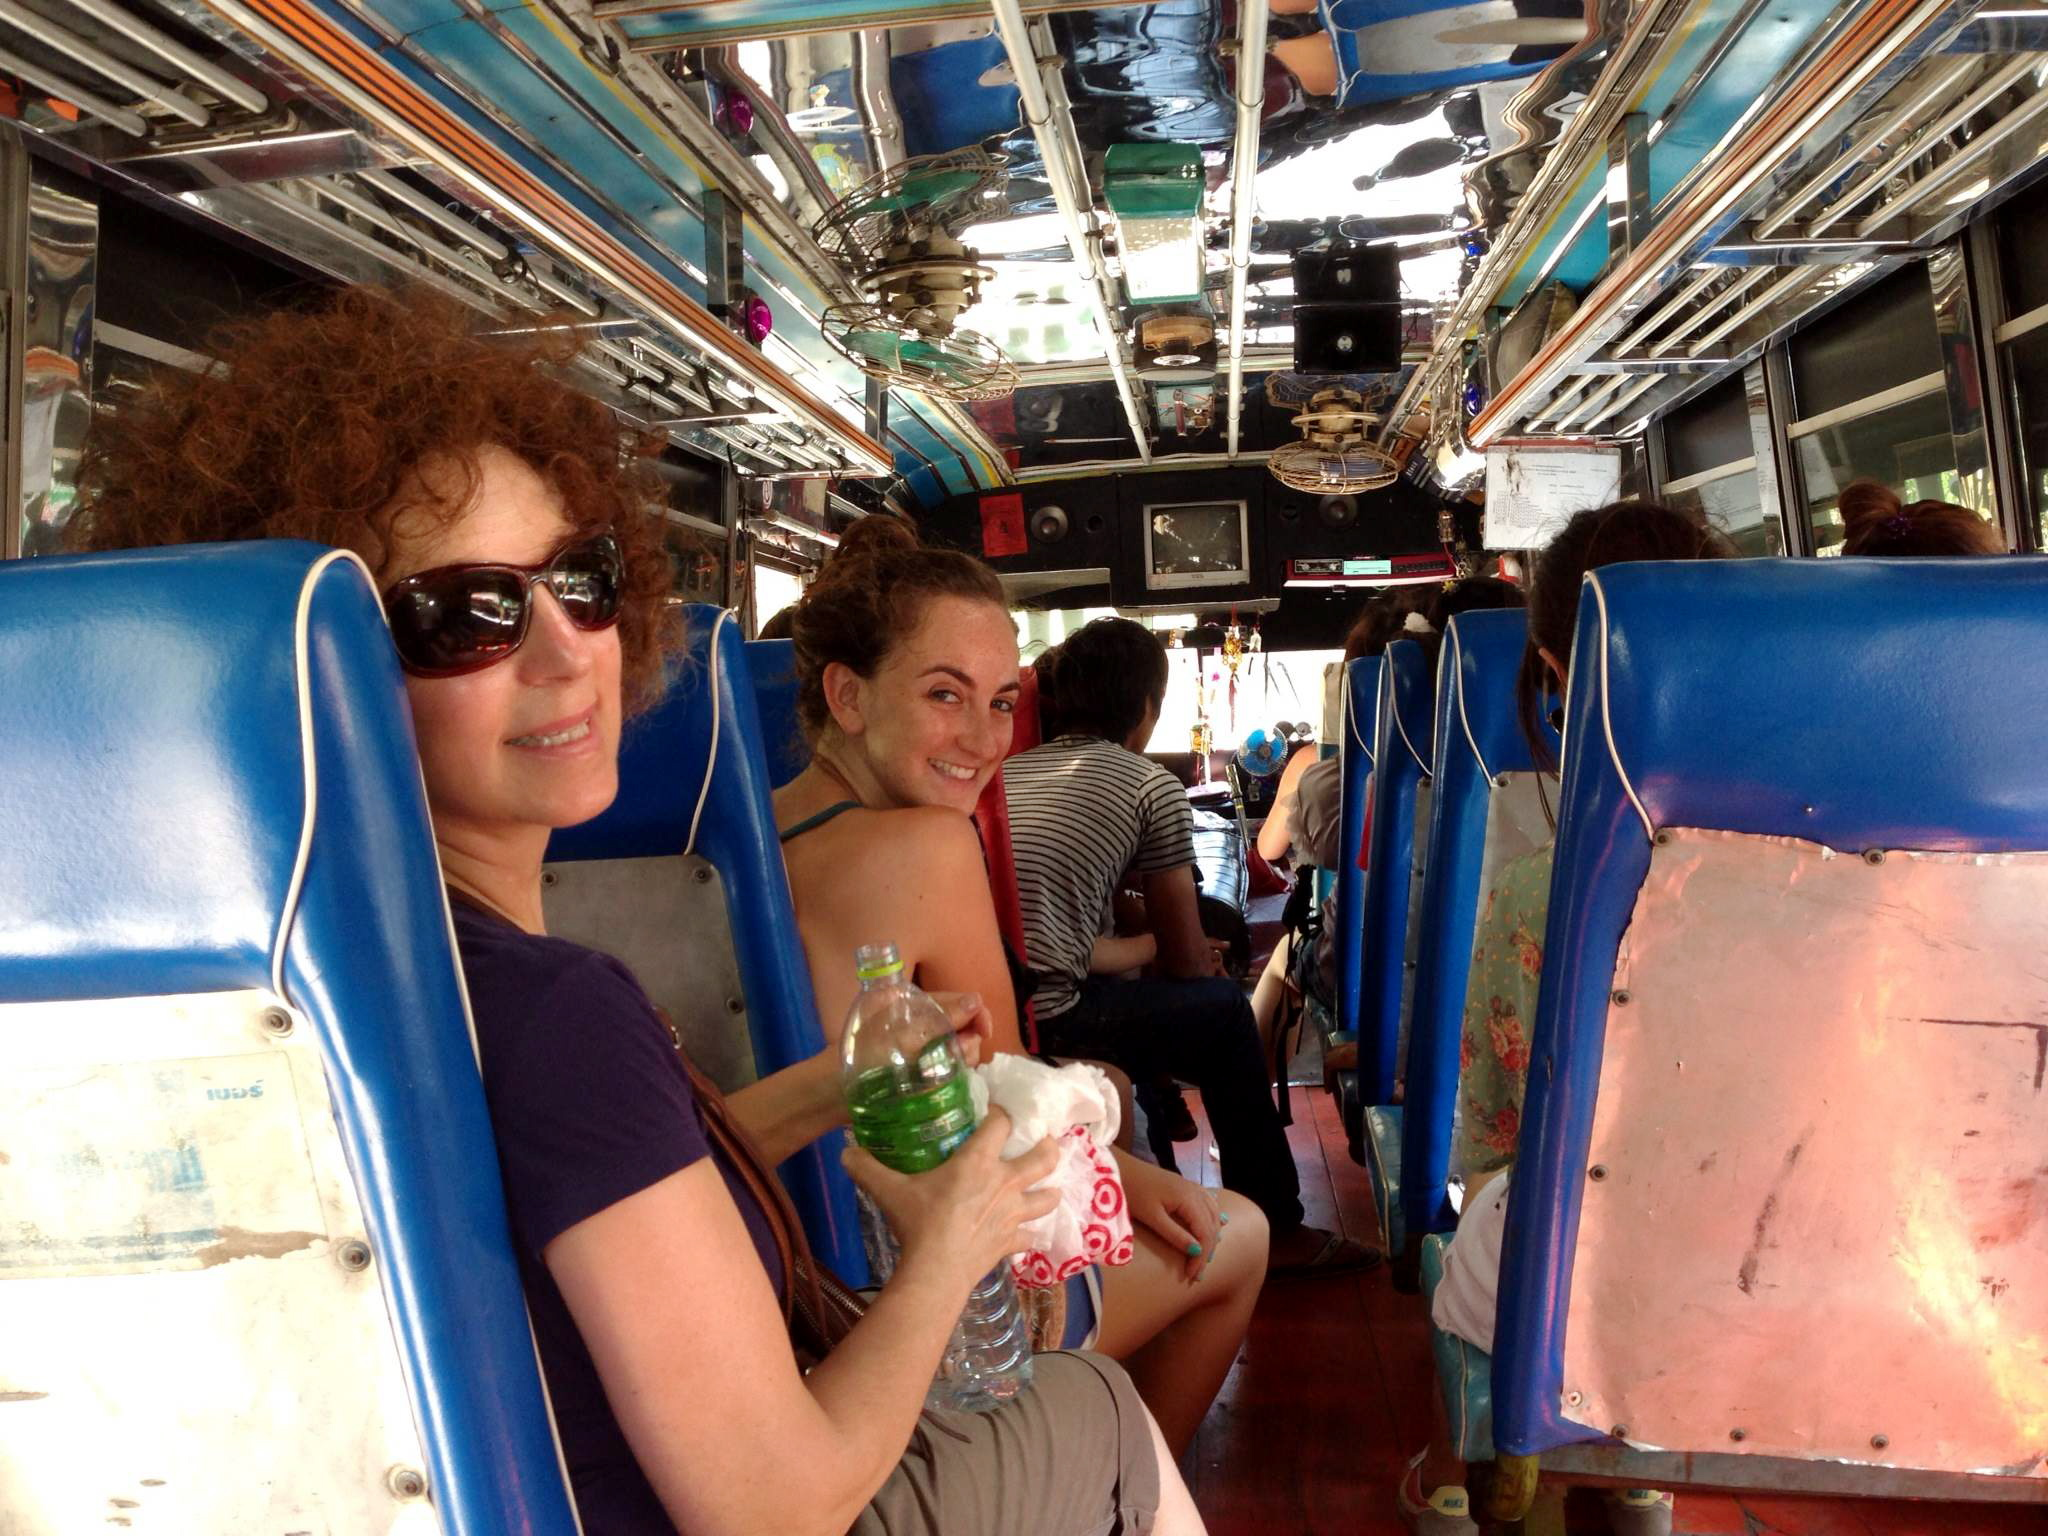 Bus ride with my parents from Kanchanaburi back to Bangkok